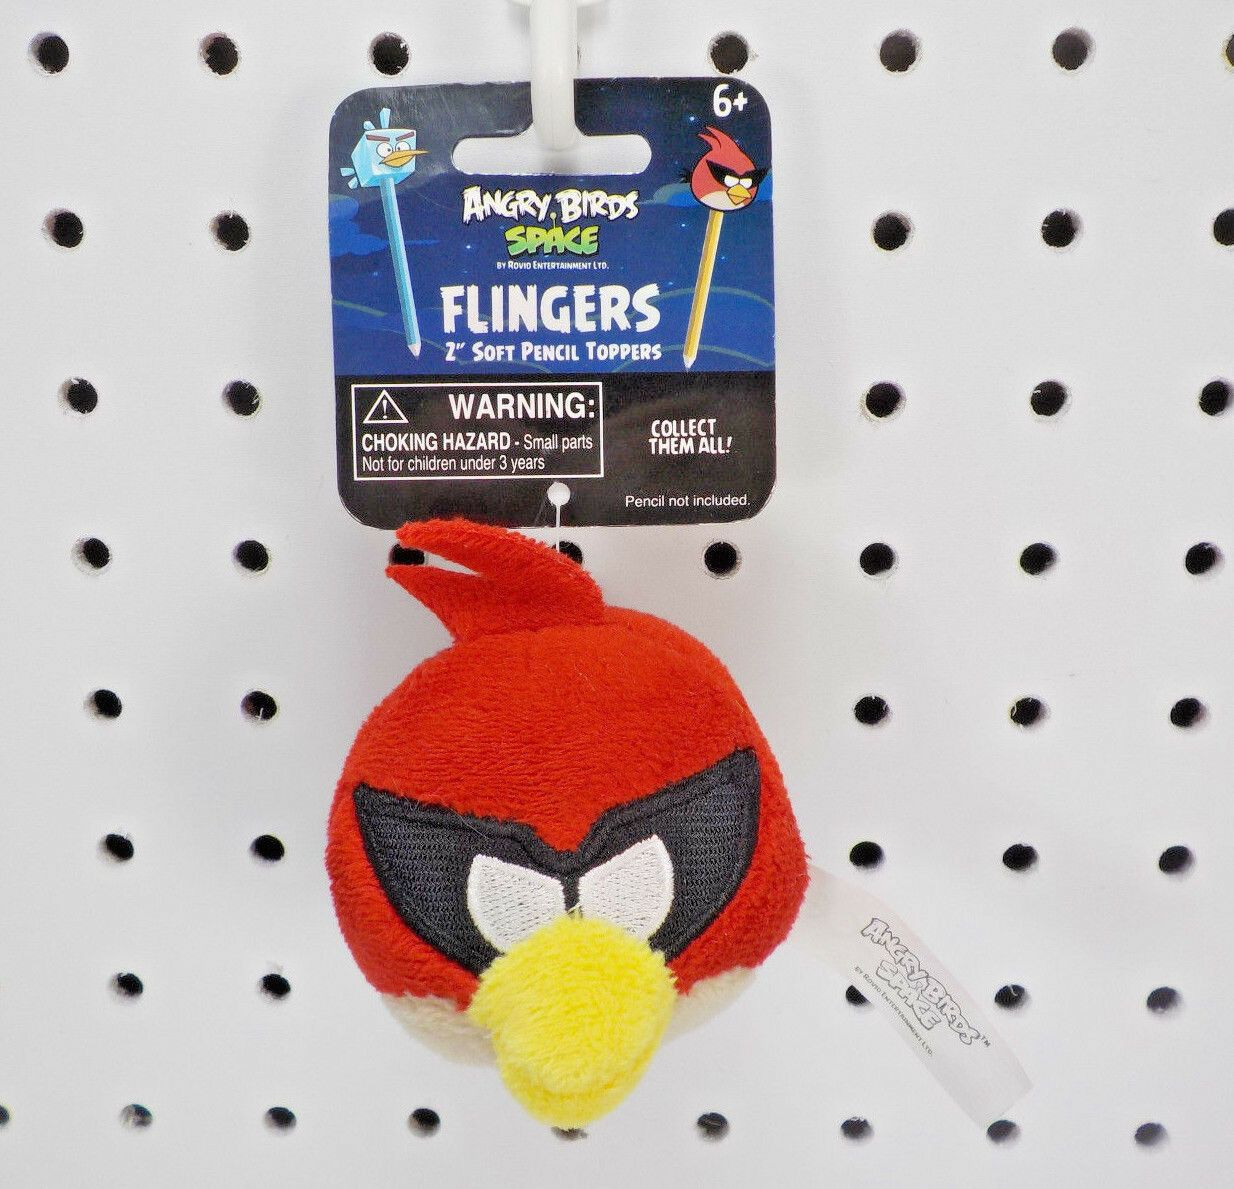 Angry Birds Space Flingers 2 Soft Pencil Topper Red - Angry Bird ...